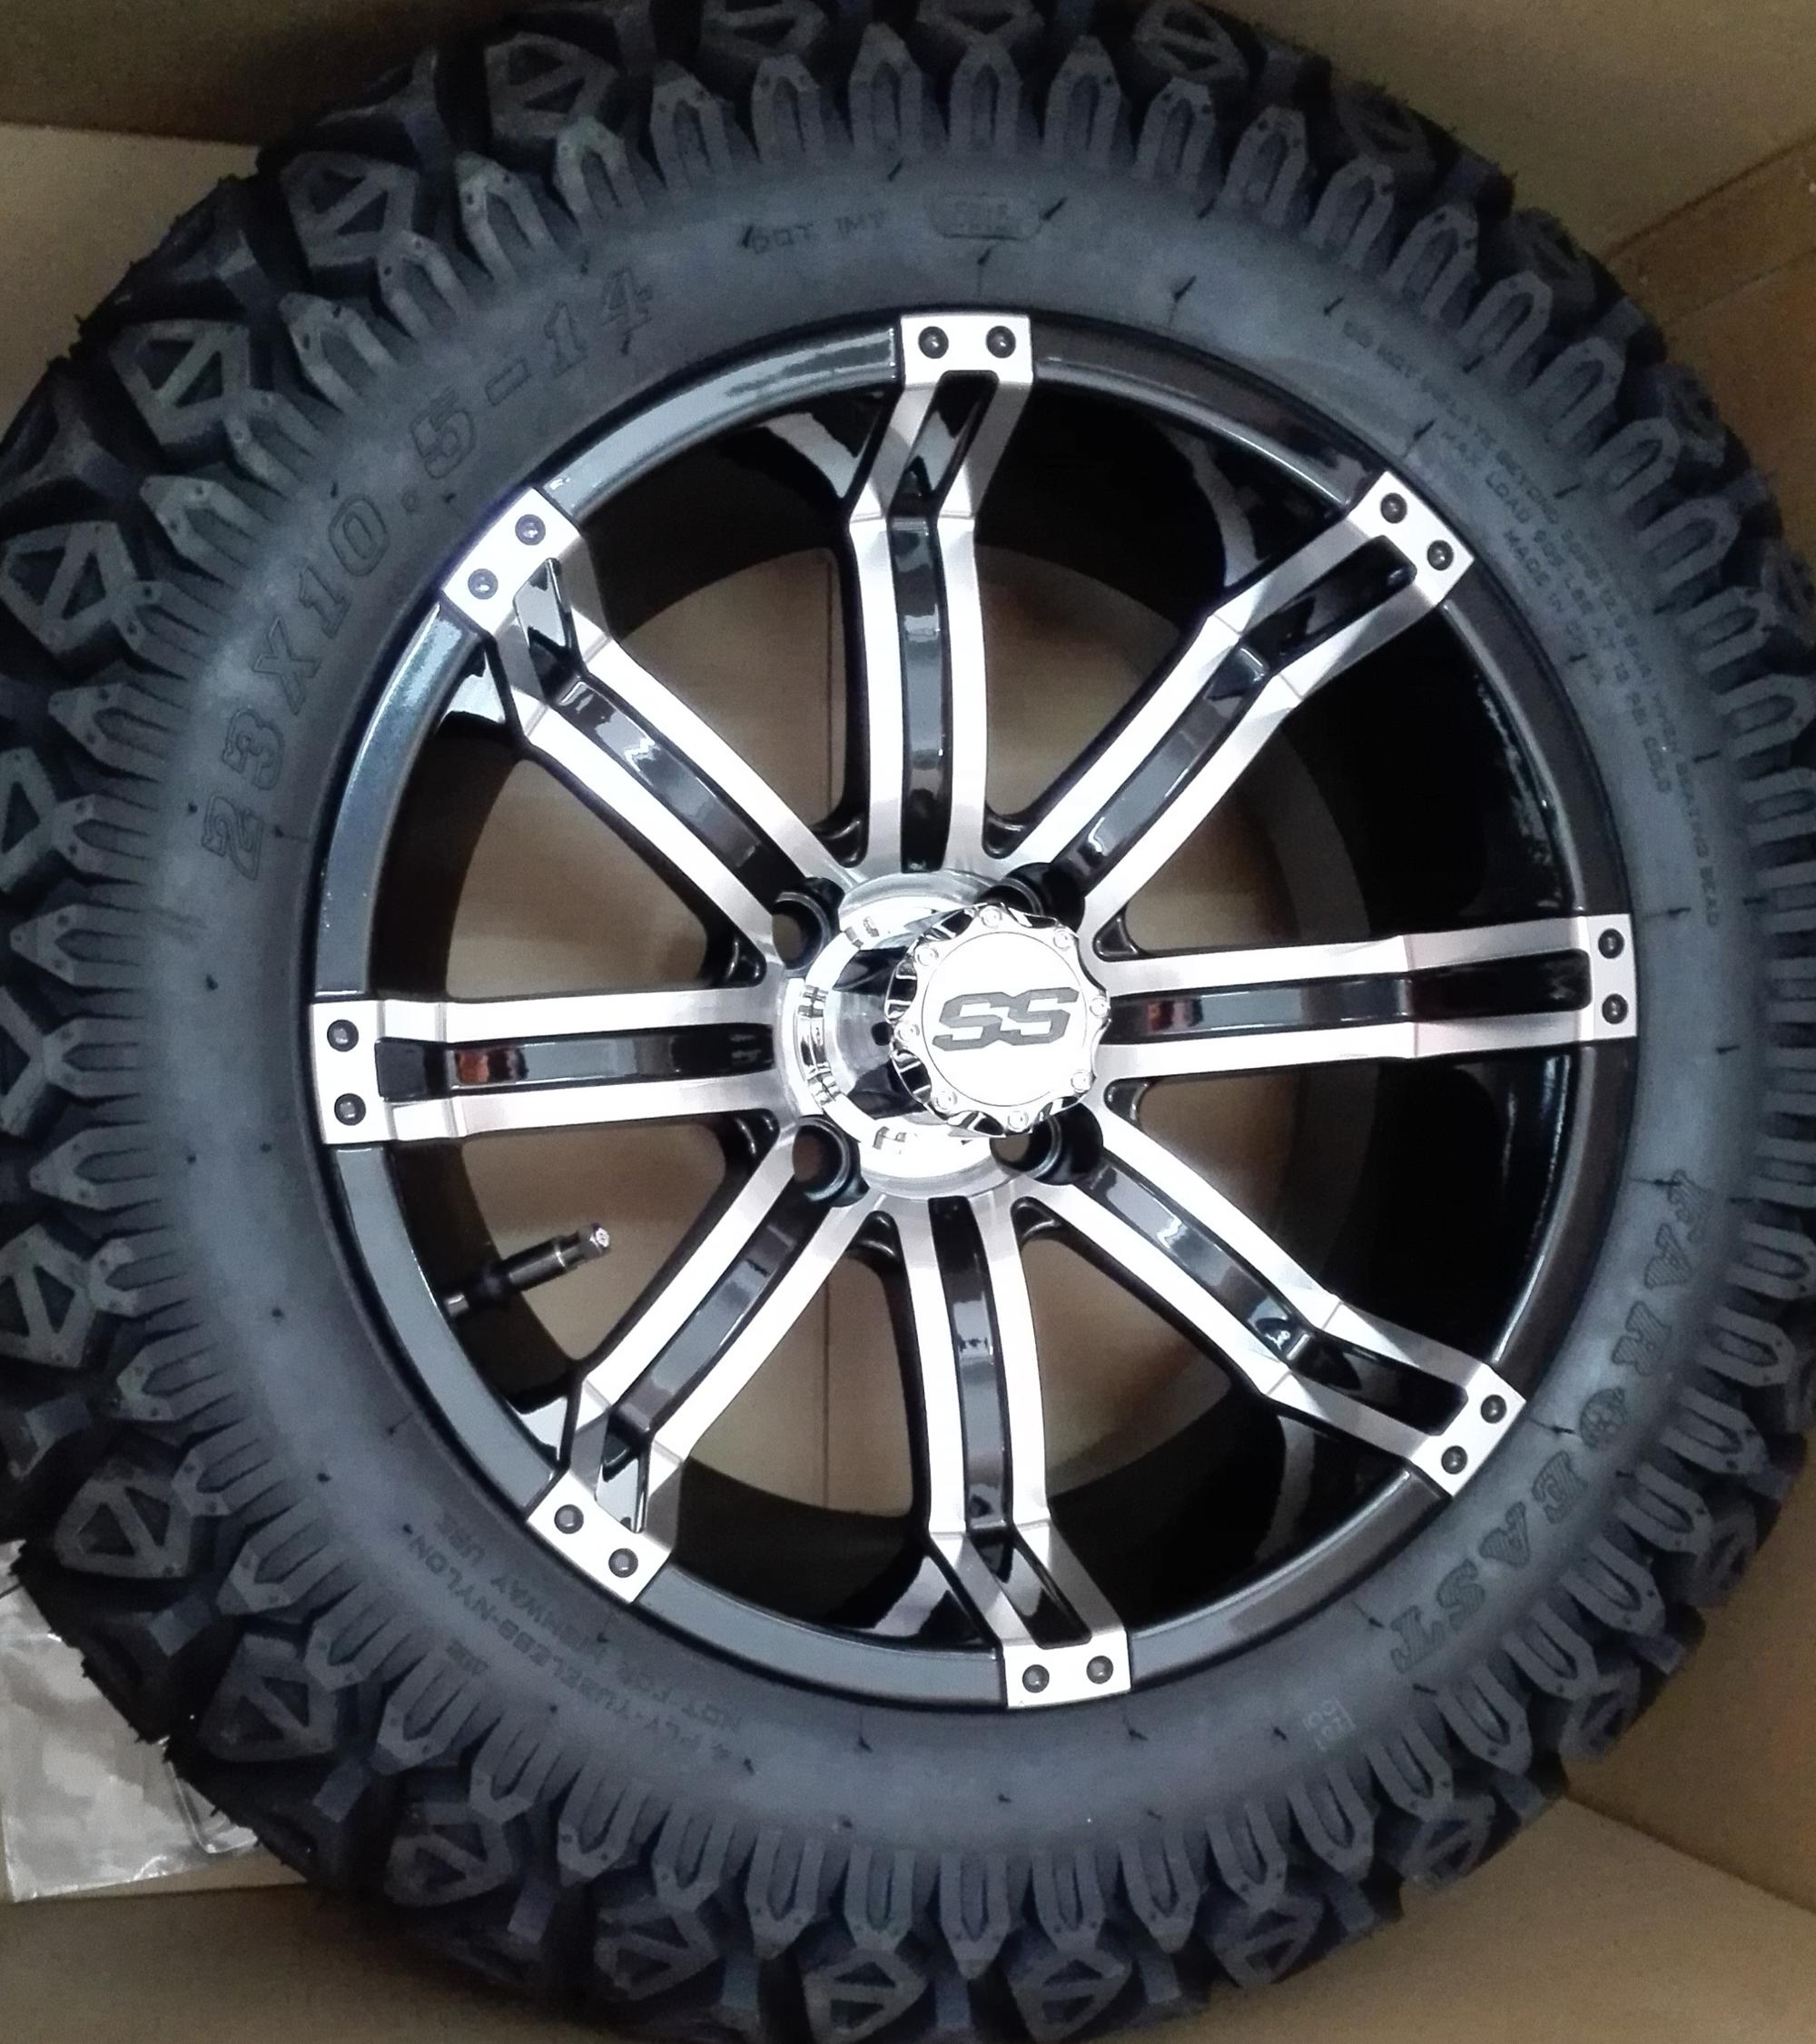 14 Golf Cart Tires Rims Combo Tempest Aluminum Wheel With 23 10 5 14 Rugged Tire Wholesale Buy Golf Cart Tires Golf Cart Rims 23 10 5 14 Rugged Tire Product On Alibaba Com